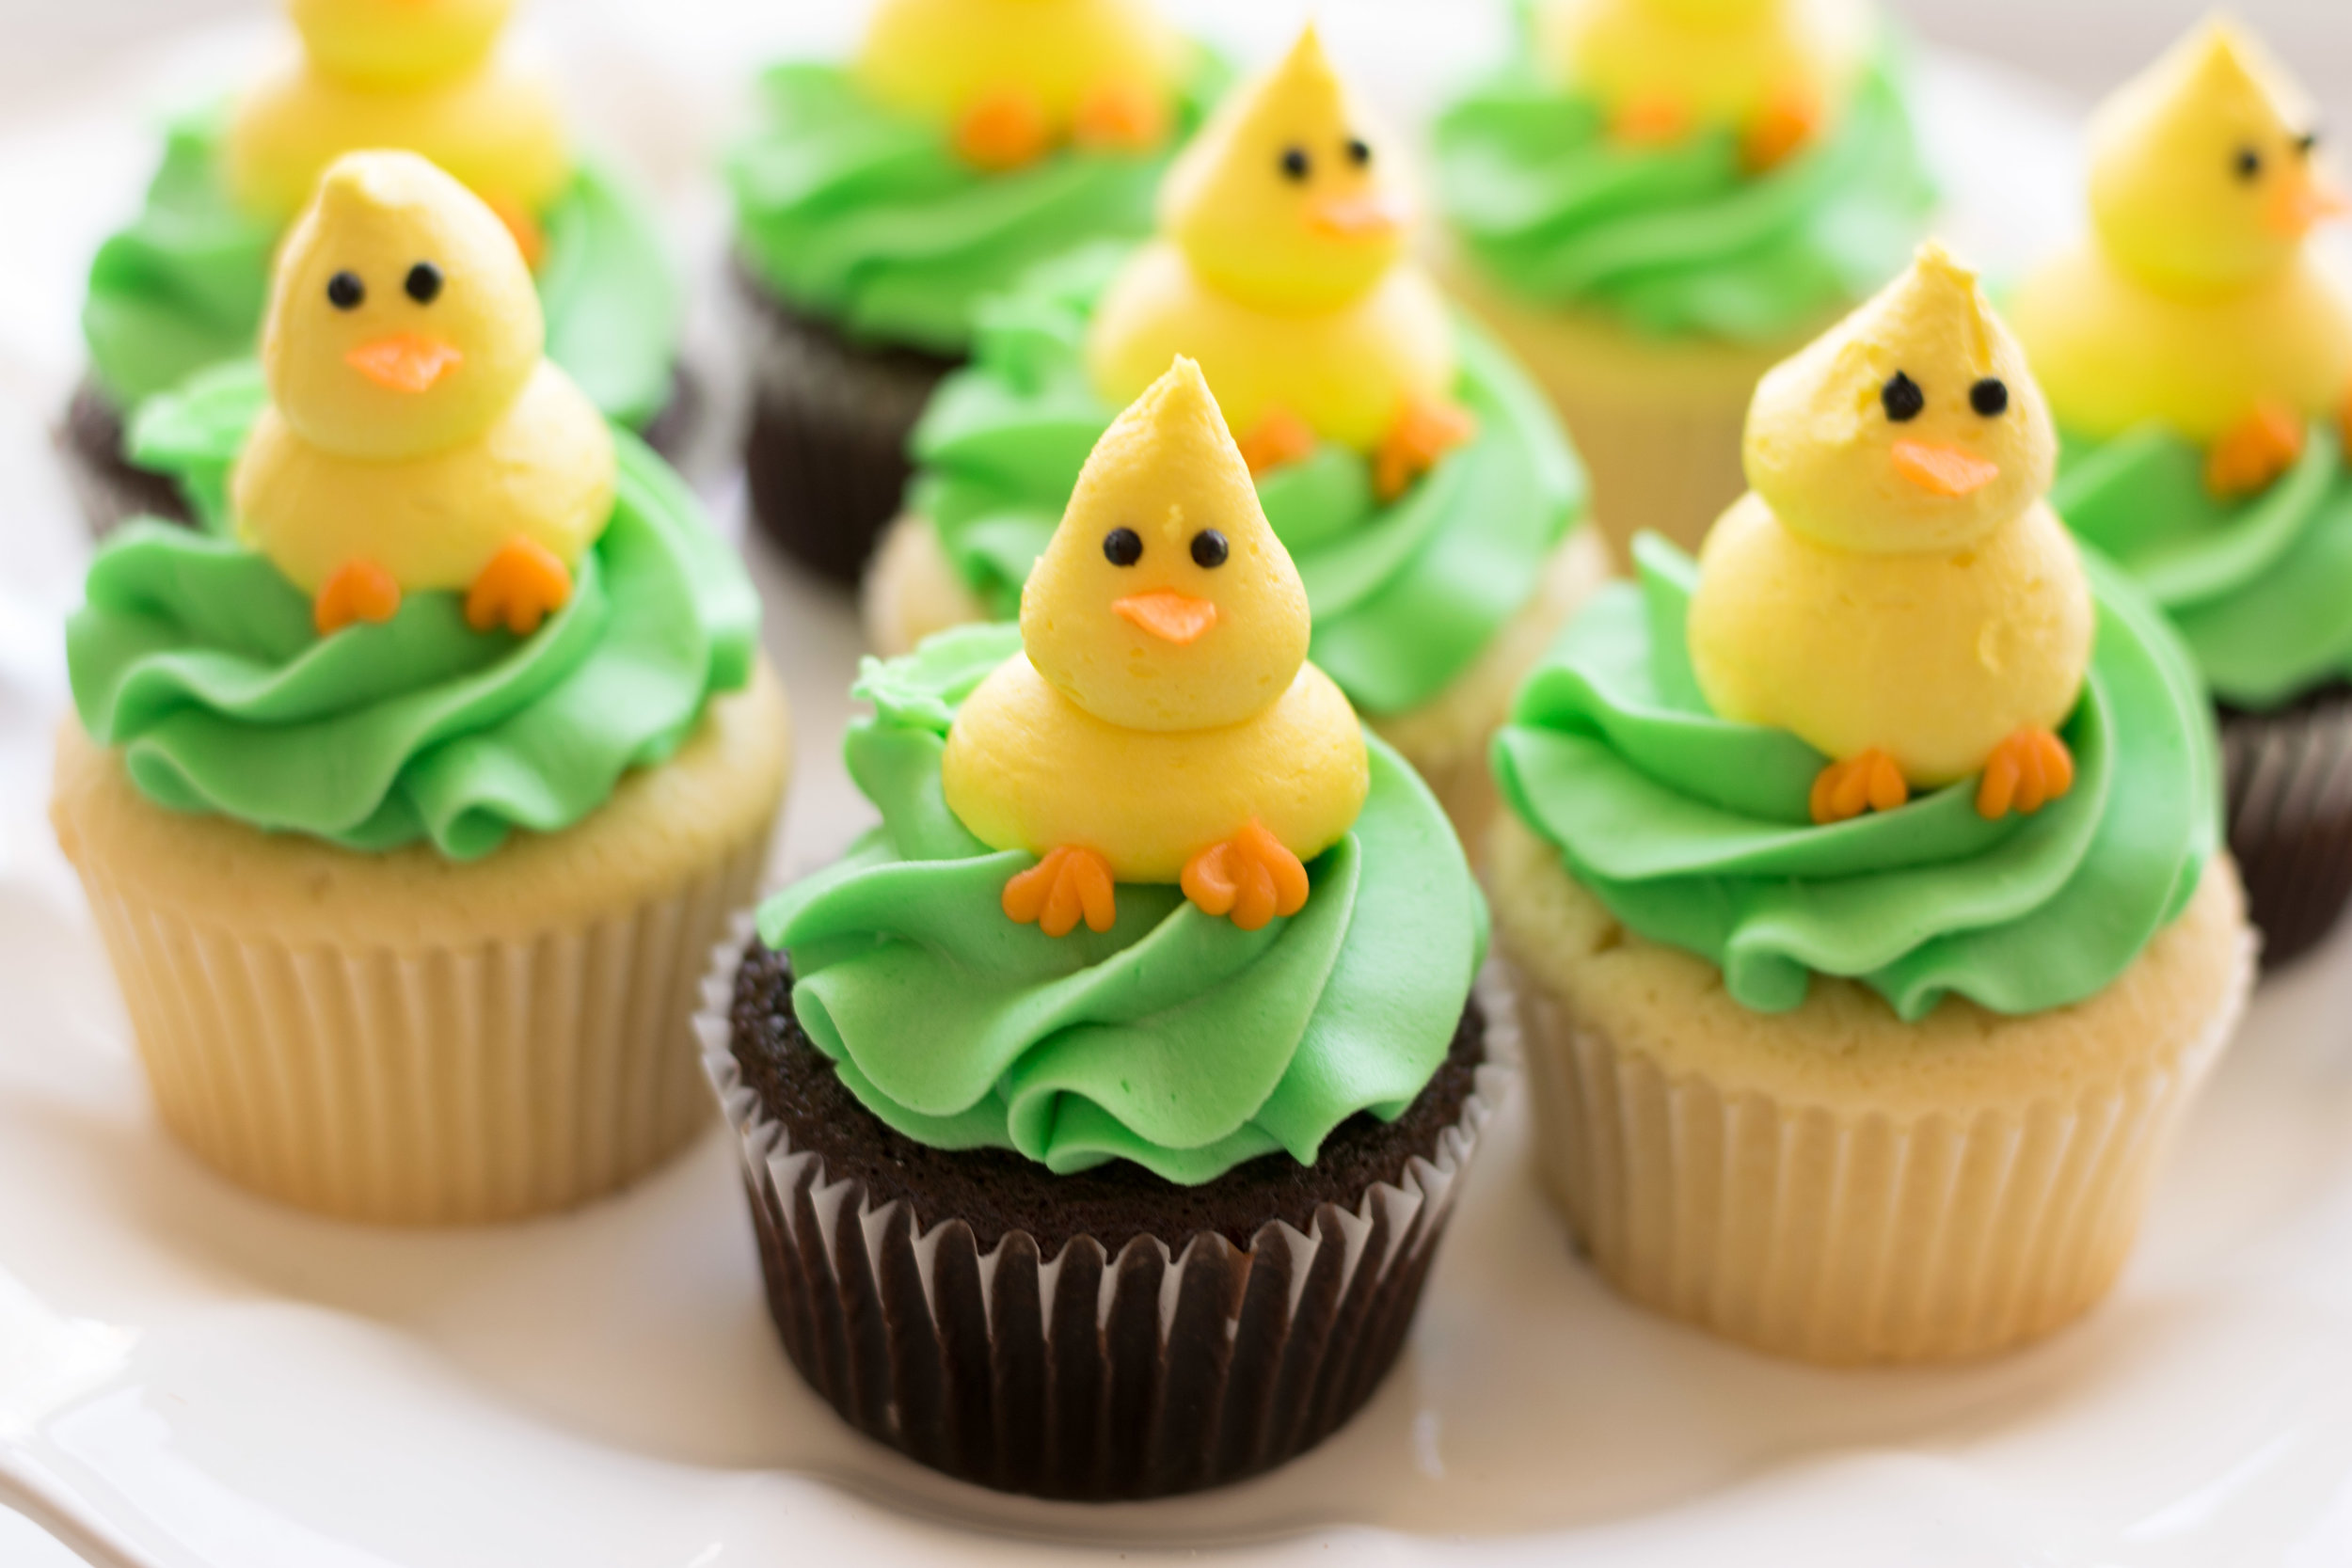 Chick Cupcakes : Chocolate or Vanilla bases - $4.50